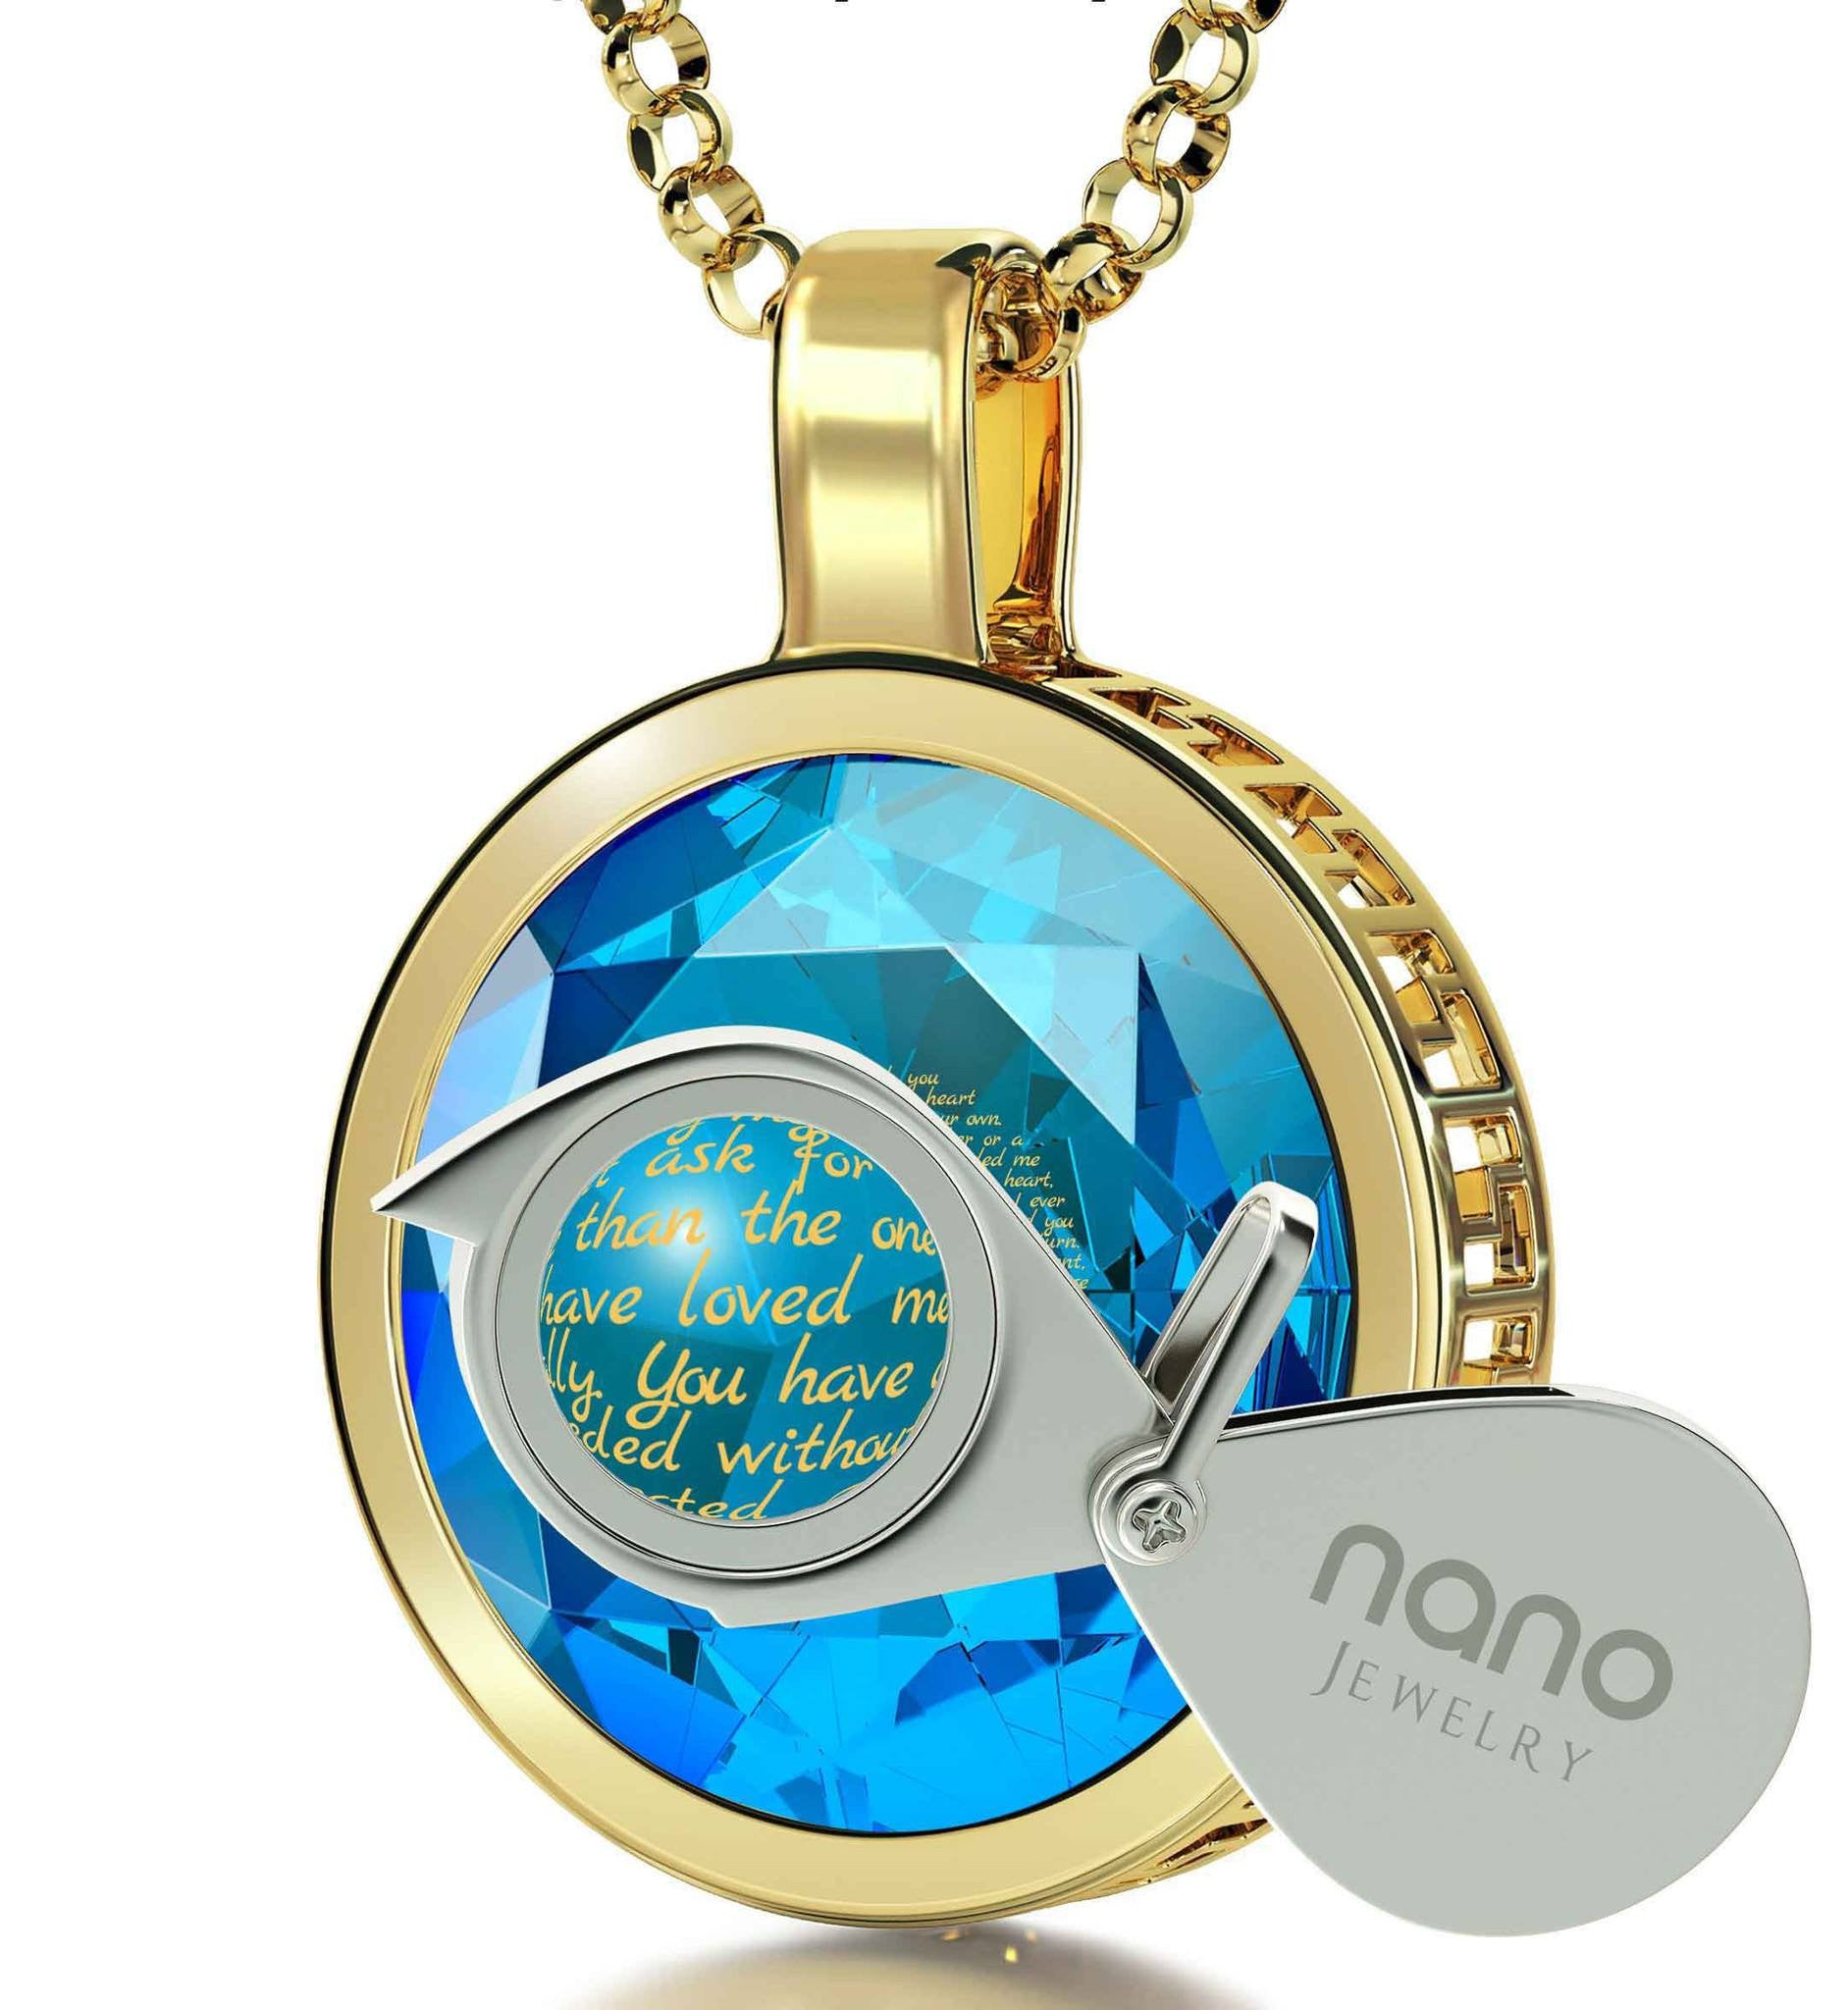 Mother's Day Gift Ideas, 24k Engraved Jewelry, Necklaces for Mom, by Nano